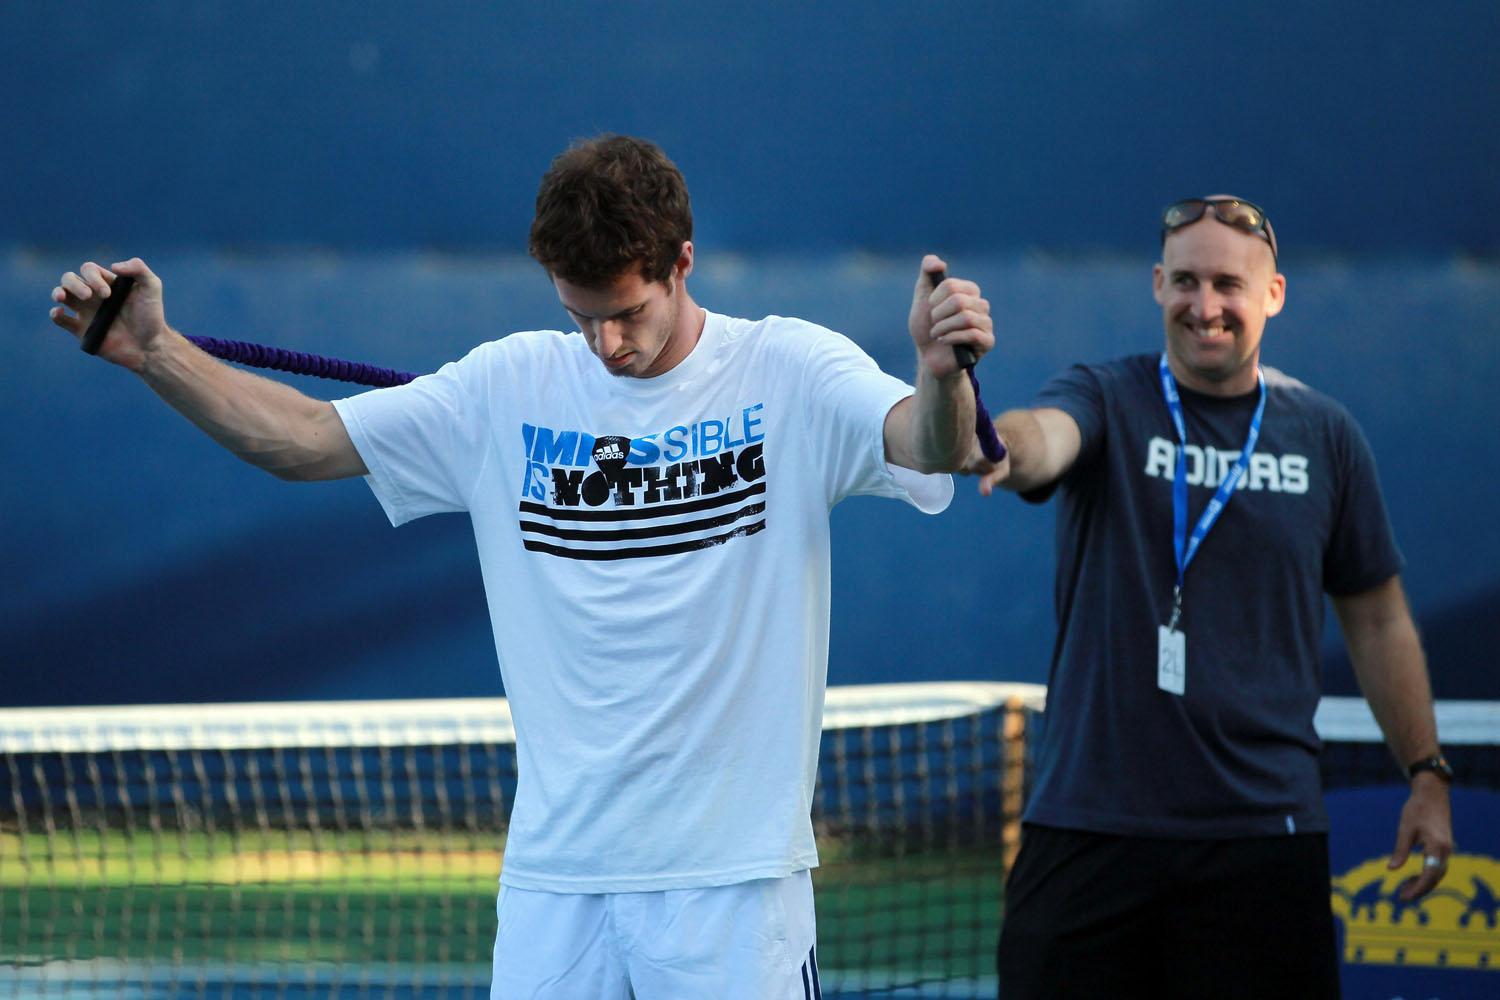 Andy Murray works out with strength and conditioning coach Jez Green prior to practicing during the Farmers Classic at the Los Angeles Tennis Center in July 2010.